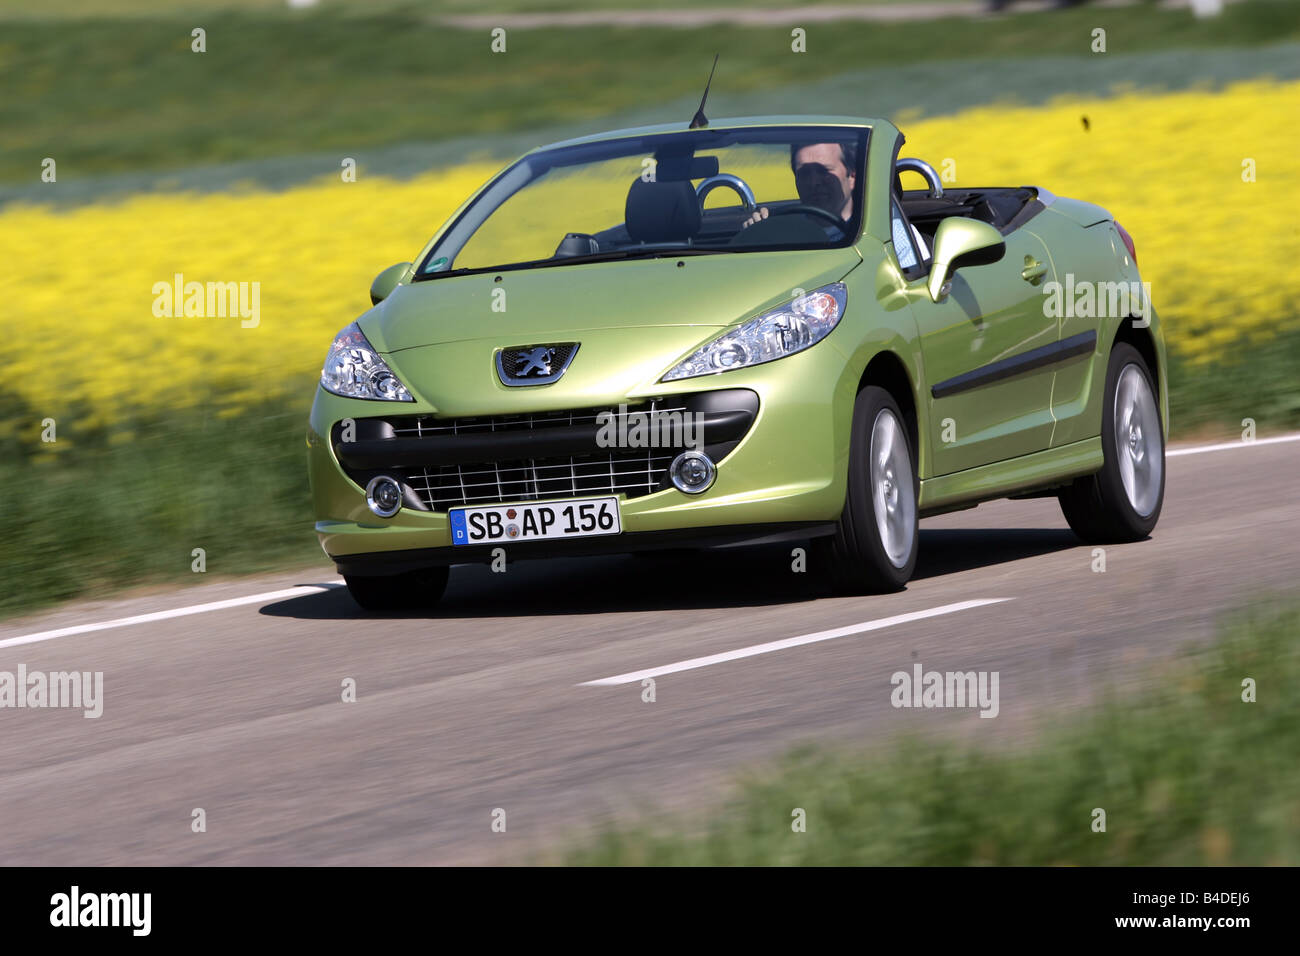 Peugeot 207 CC 120 Sport, Model Year 2007 , Green, Driving, Diagonal From  The Front, Frontal View, Country Road, Open Top